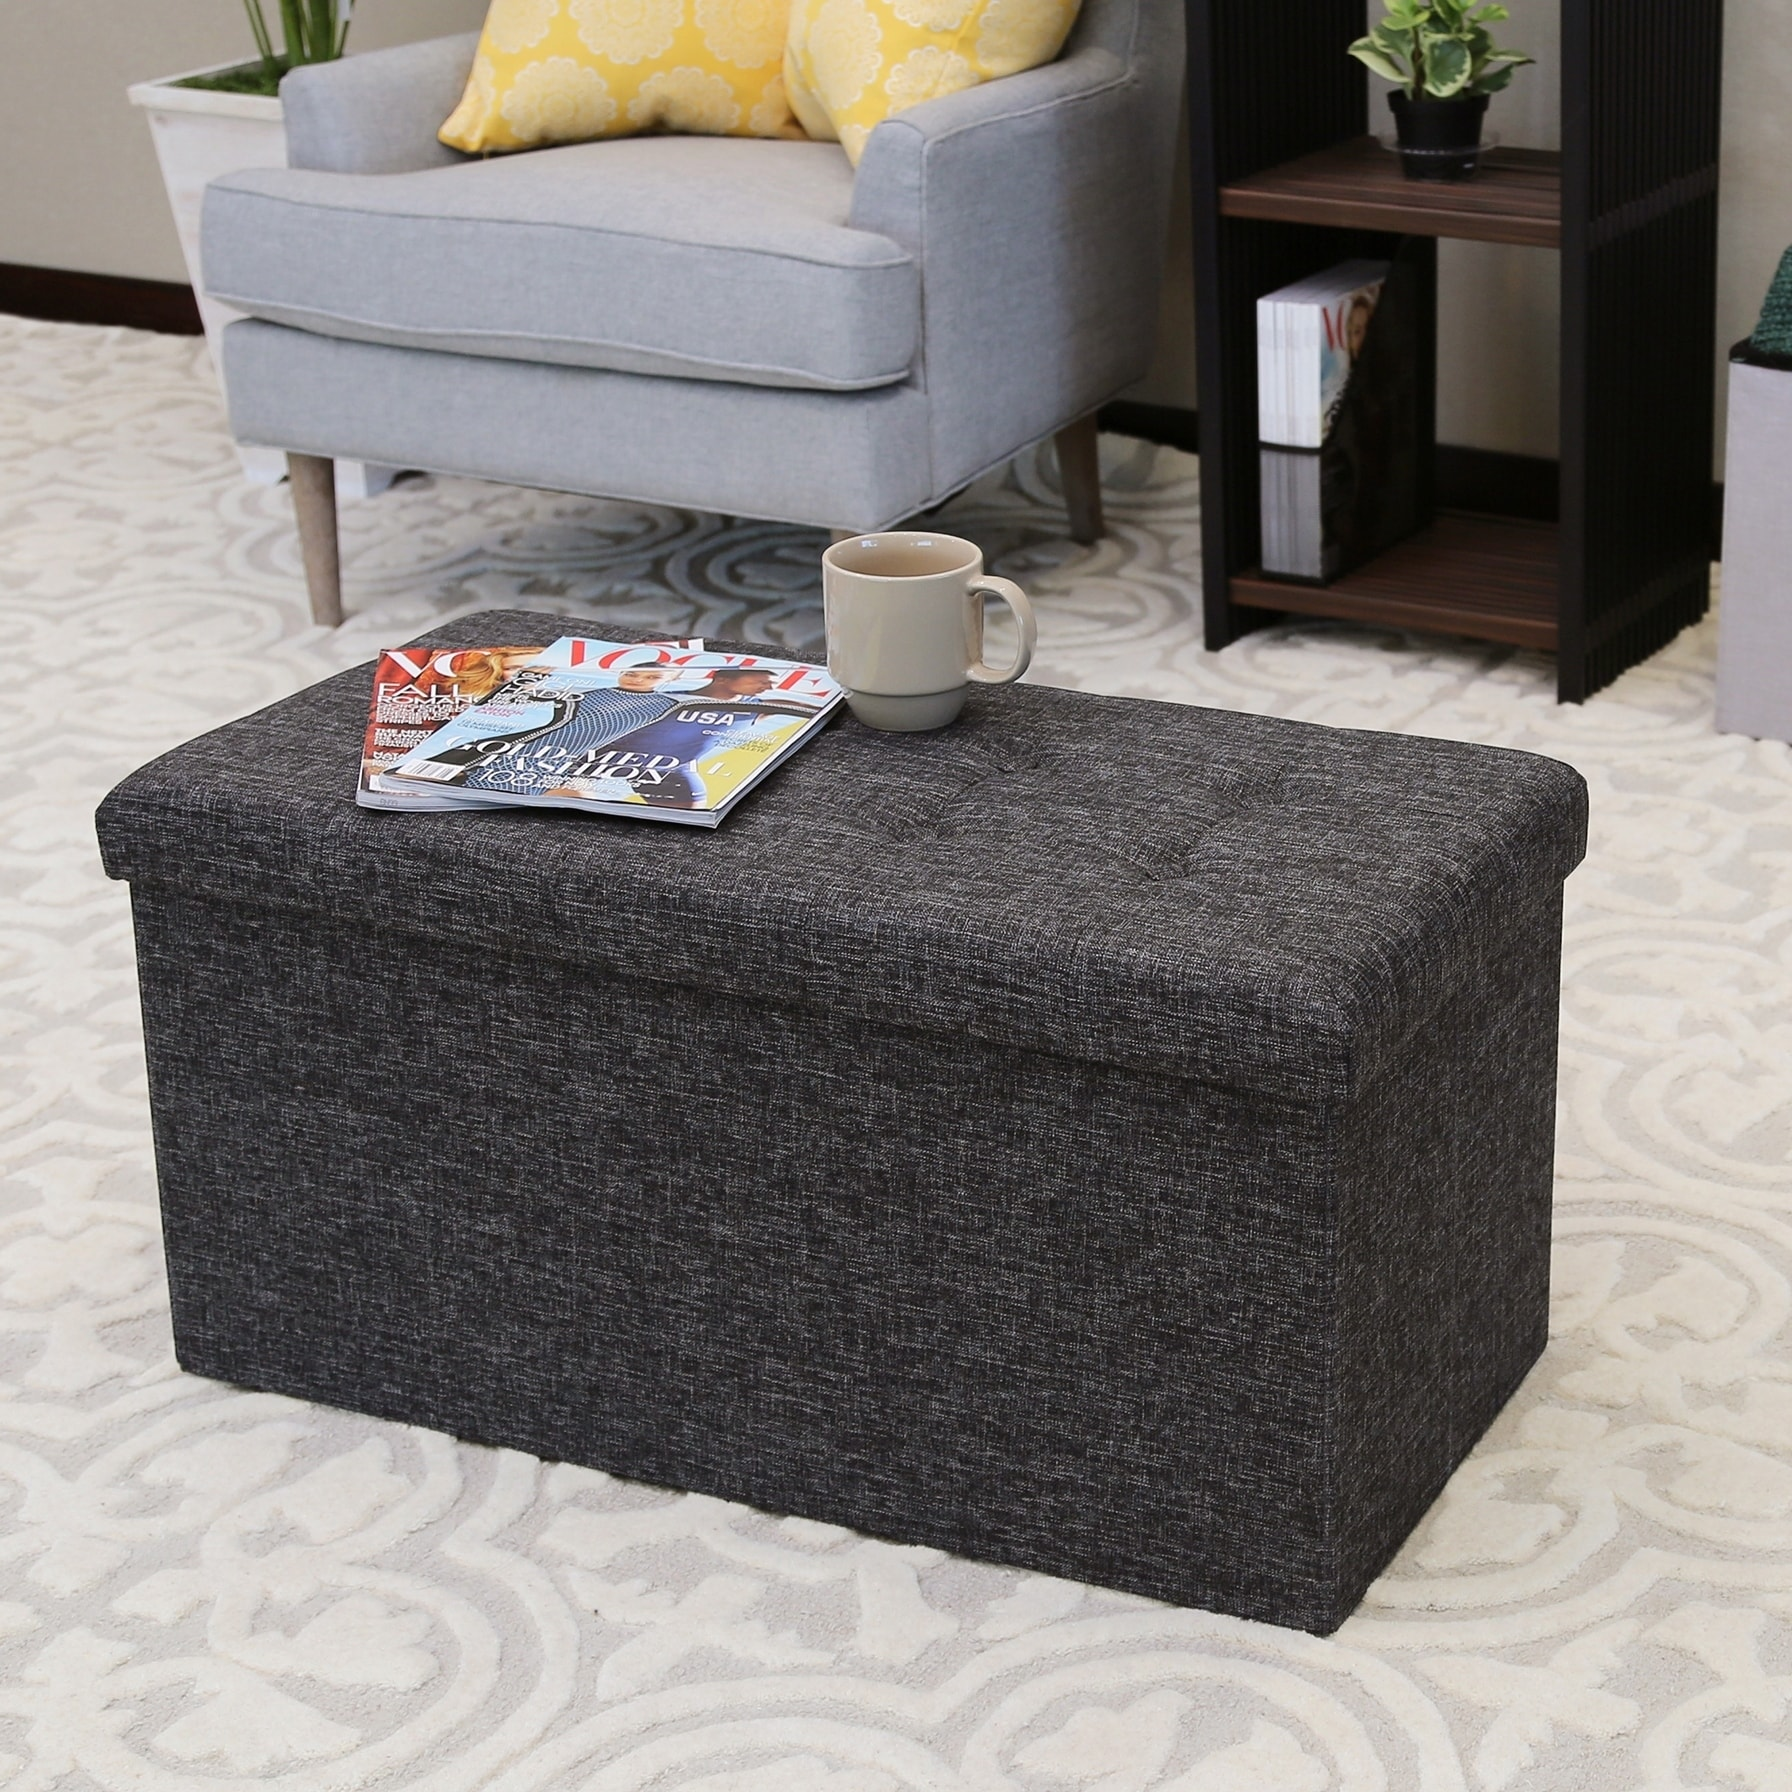 Astonishing Porch Den Dawn Charcoal Grey Foldable Storage Bench Ottoman Gmtry Best Dining Table And Chair Ideas Images Gmtryco